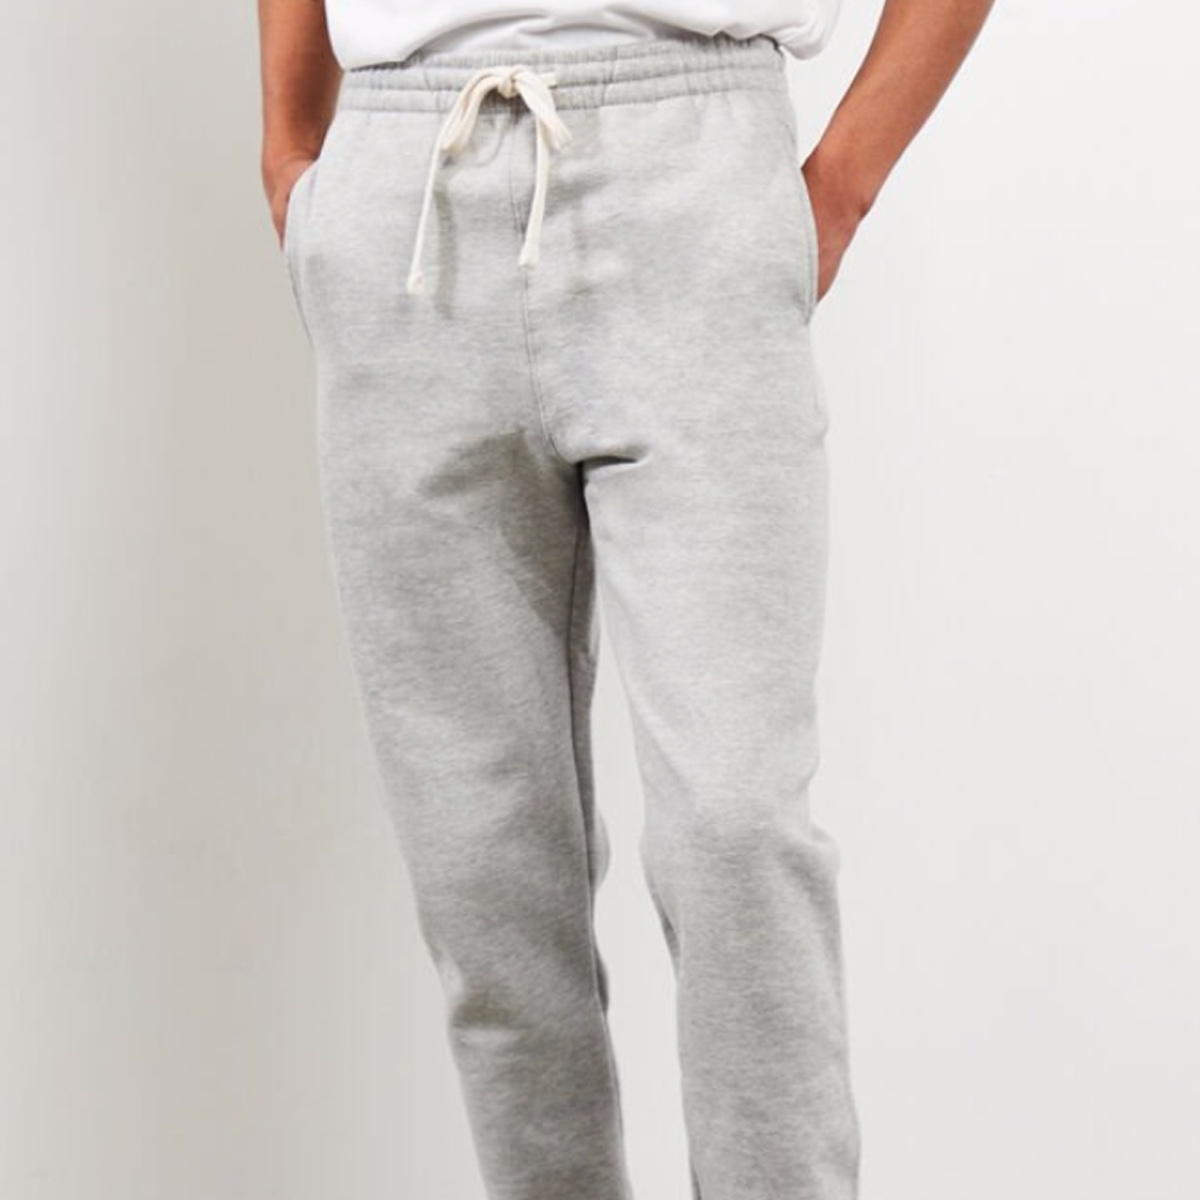 PacSun Light Gray Sweatpants